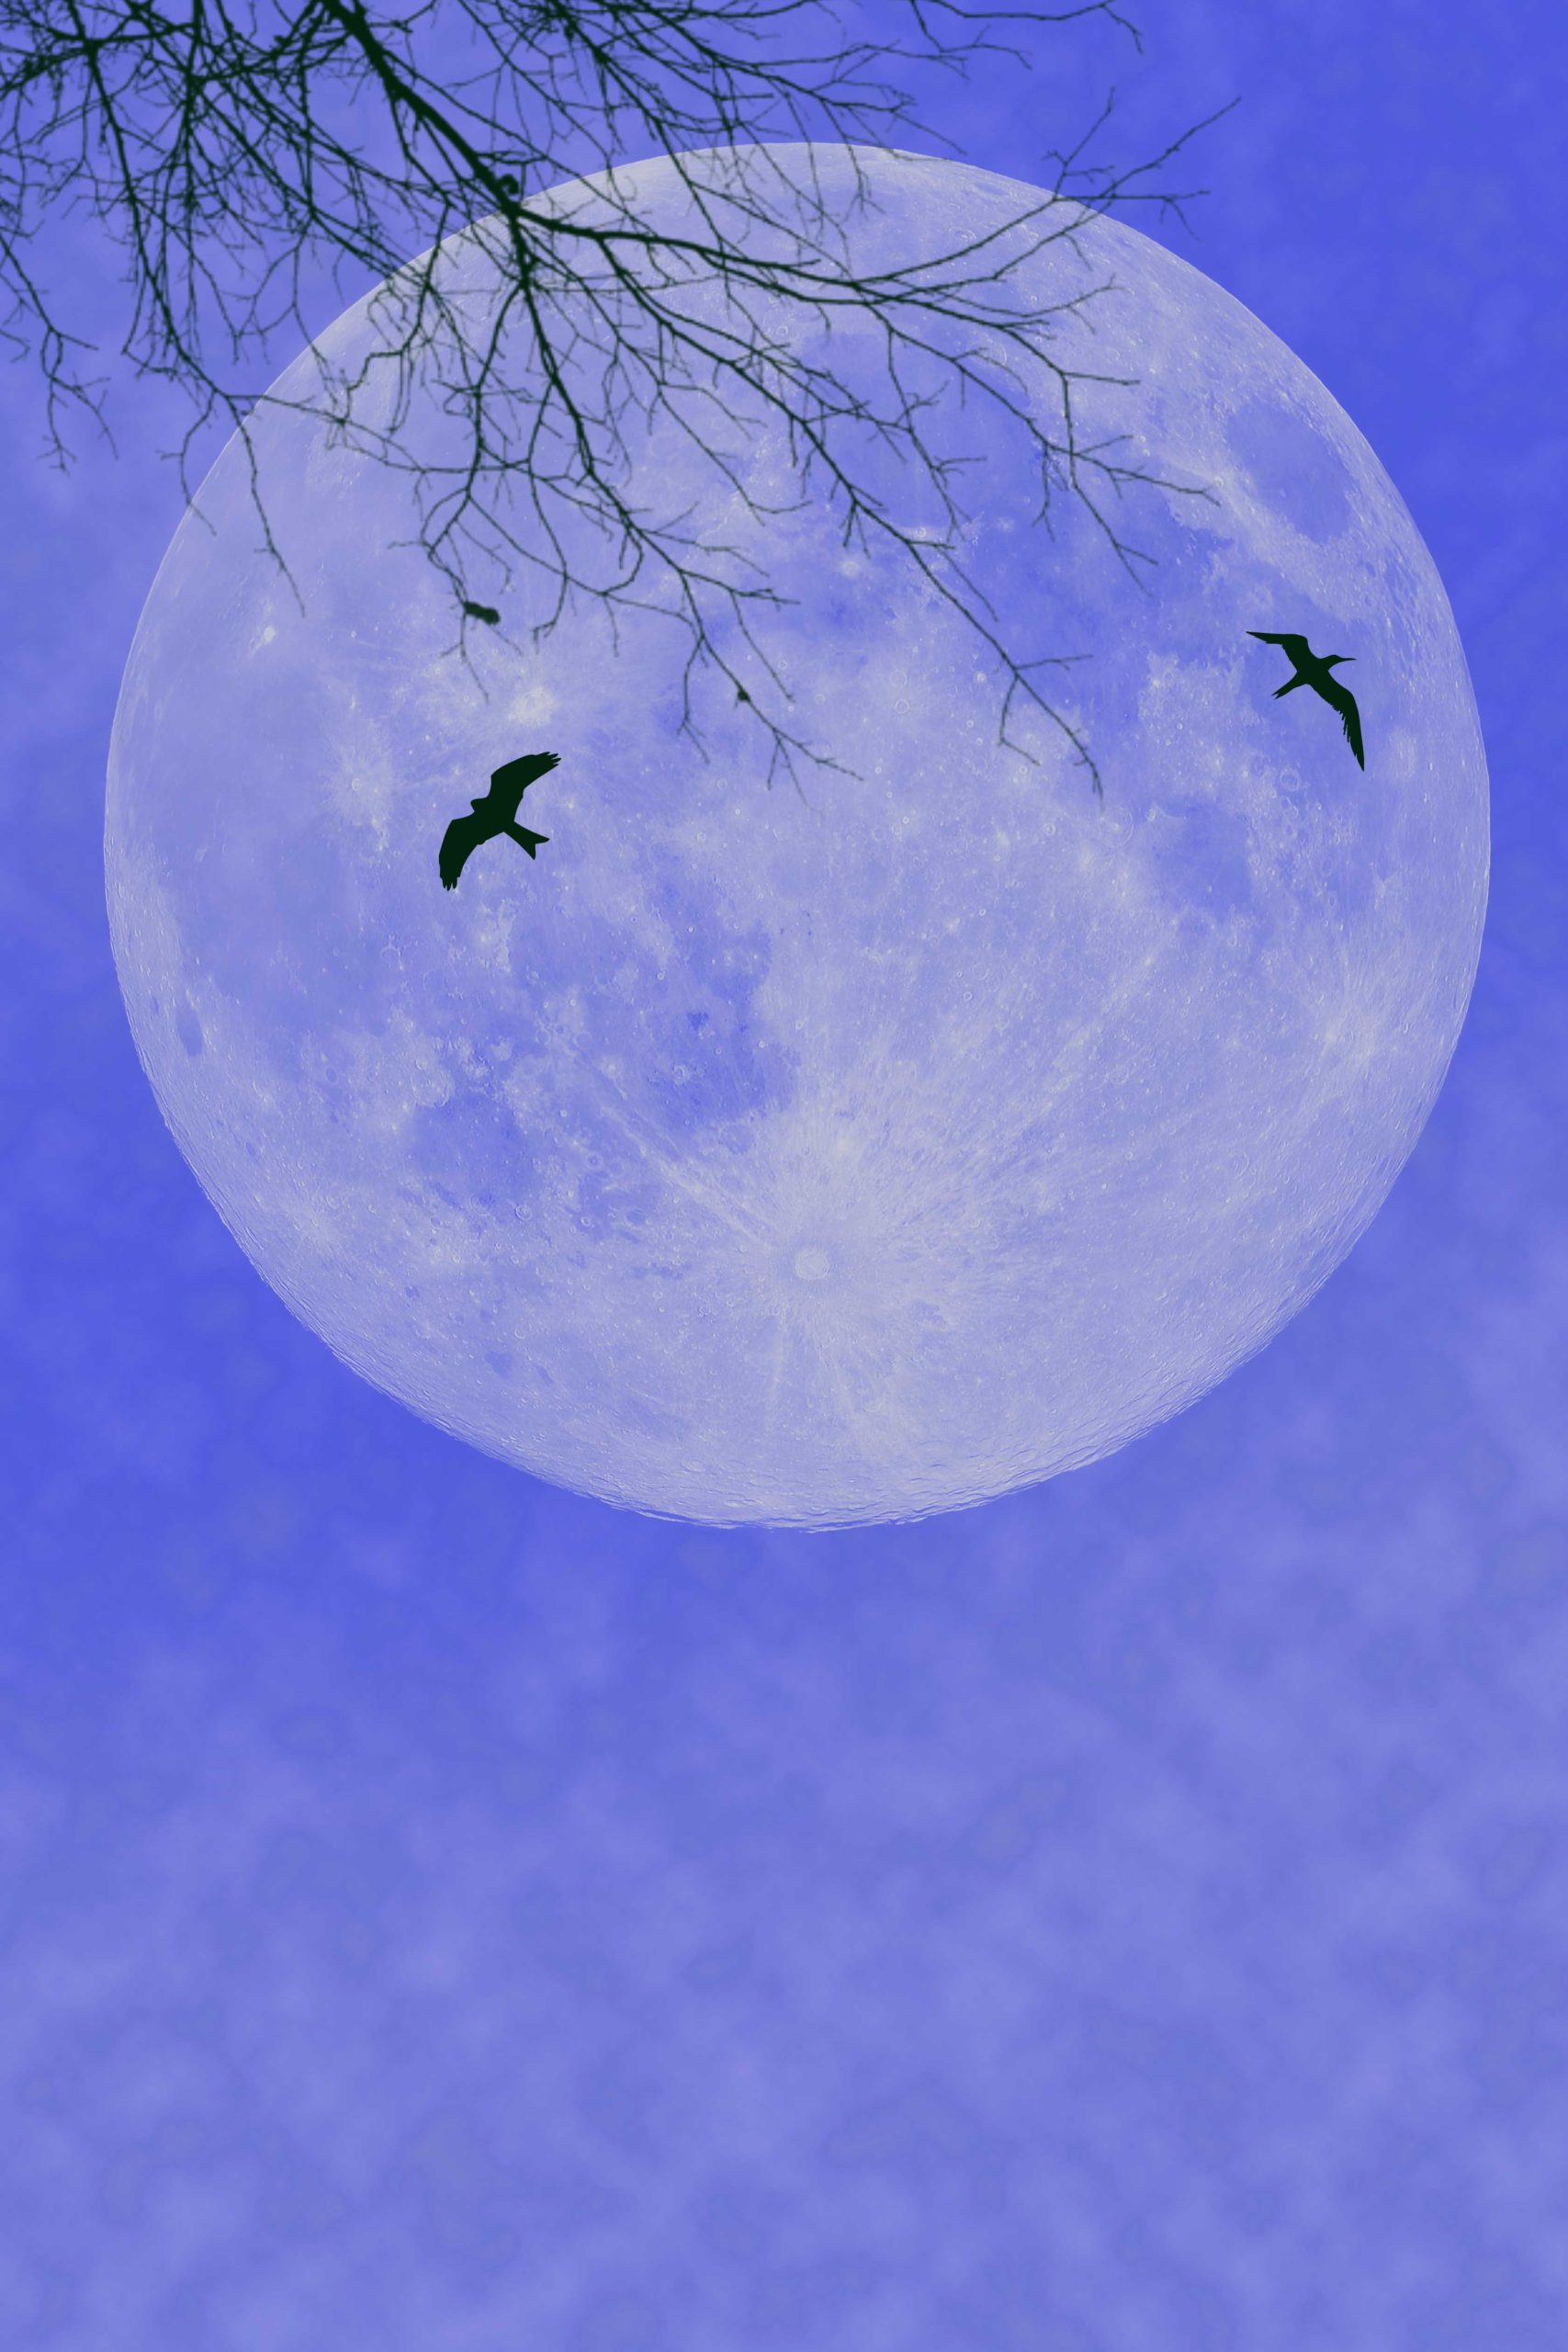 The 2020 blue moon falls on Samhain. Here's how to make the most of it.